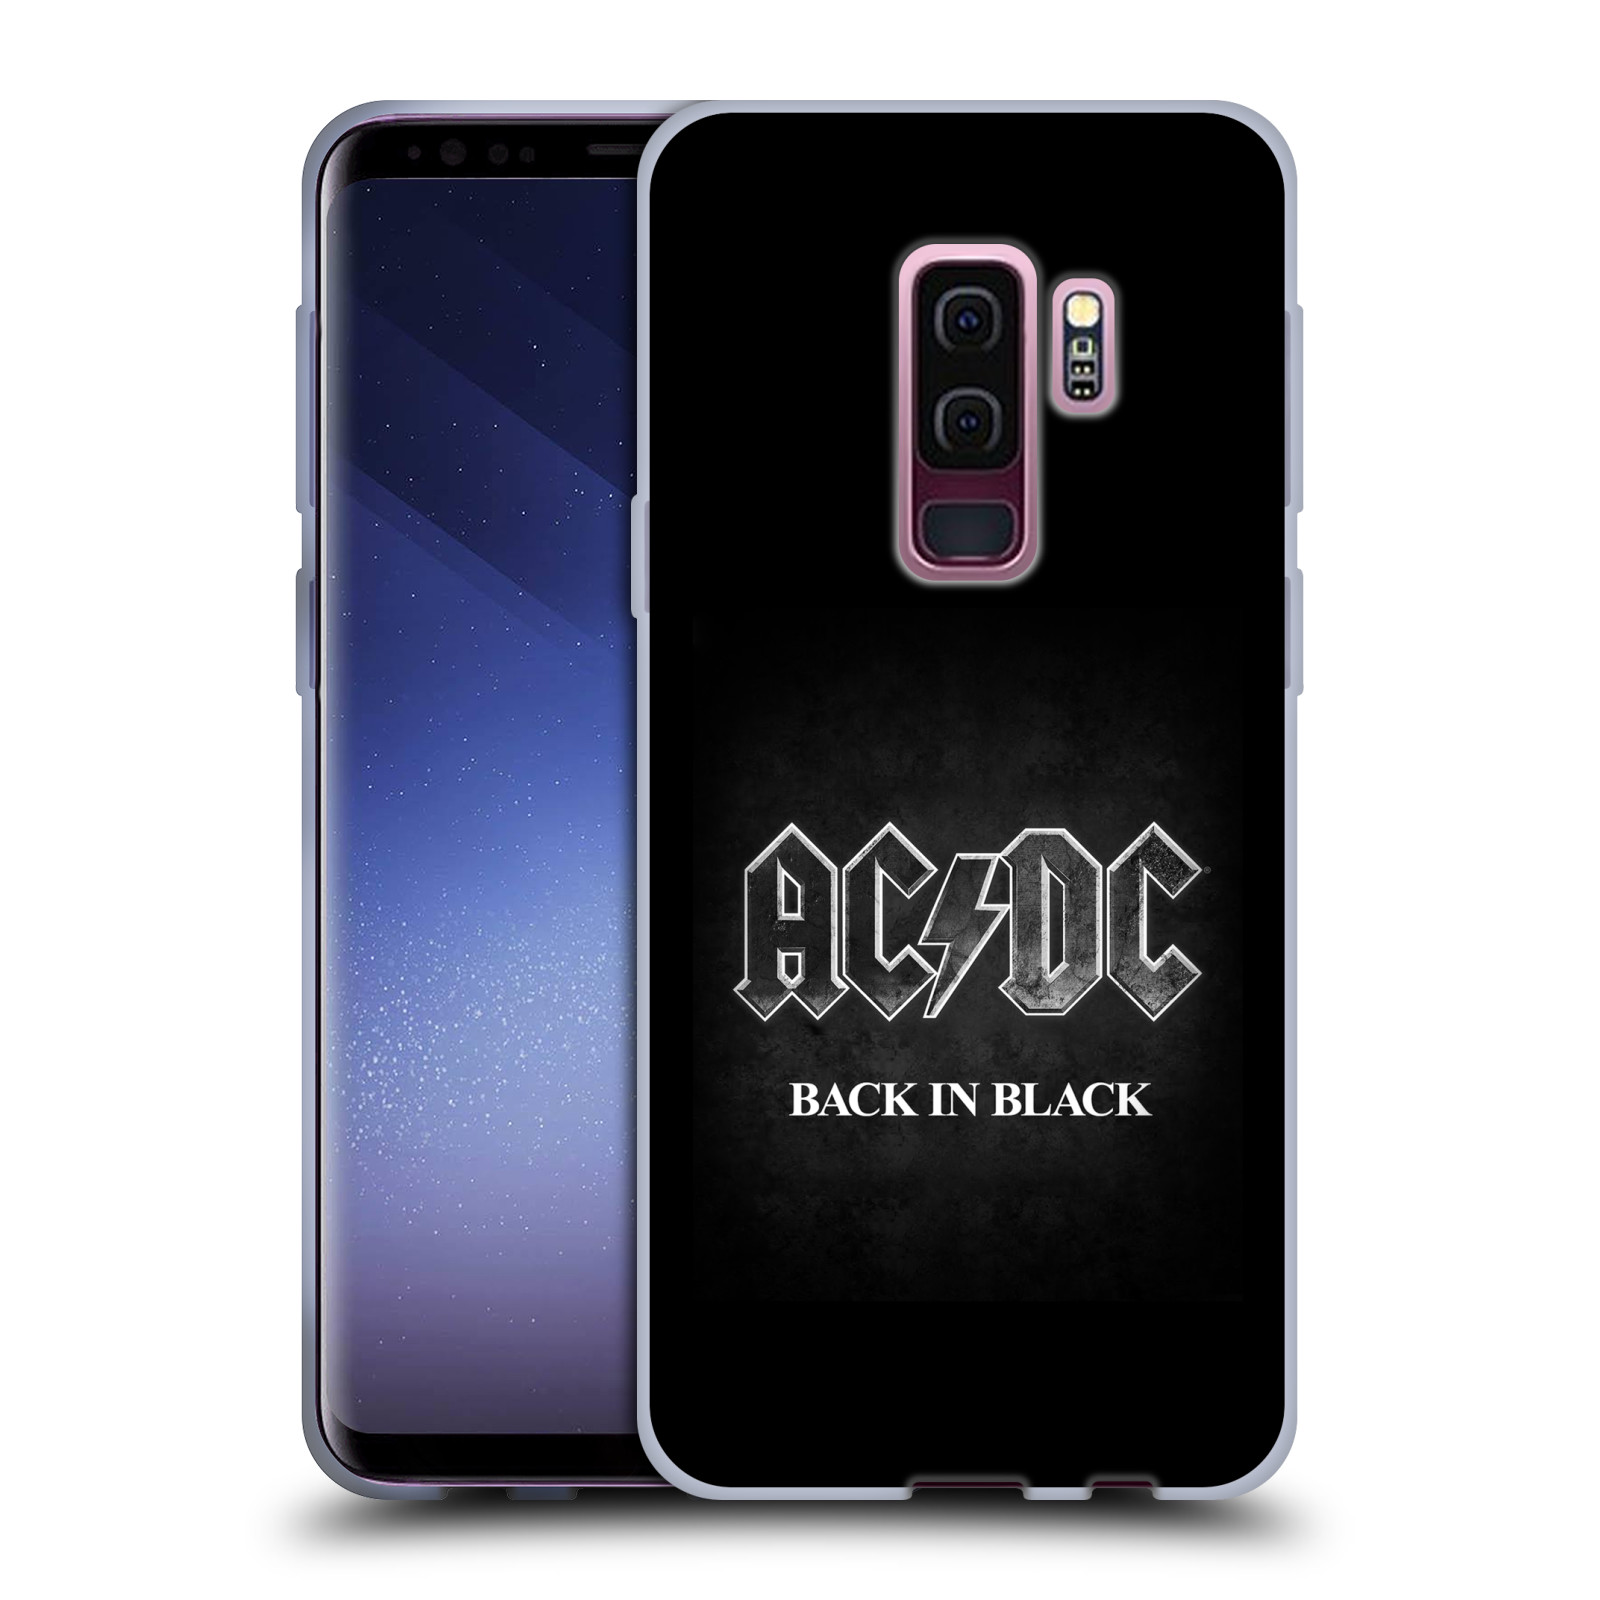 Silikonové pouzdro na mobil Samsung Galaxy S9 Plus - Head Case - AC/DC BACK IN BLACK